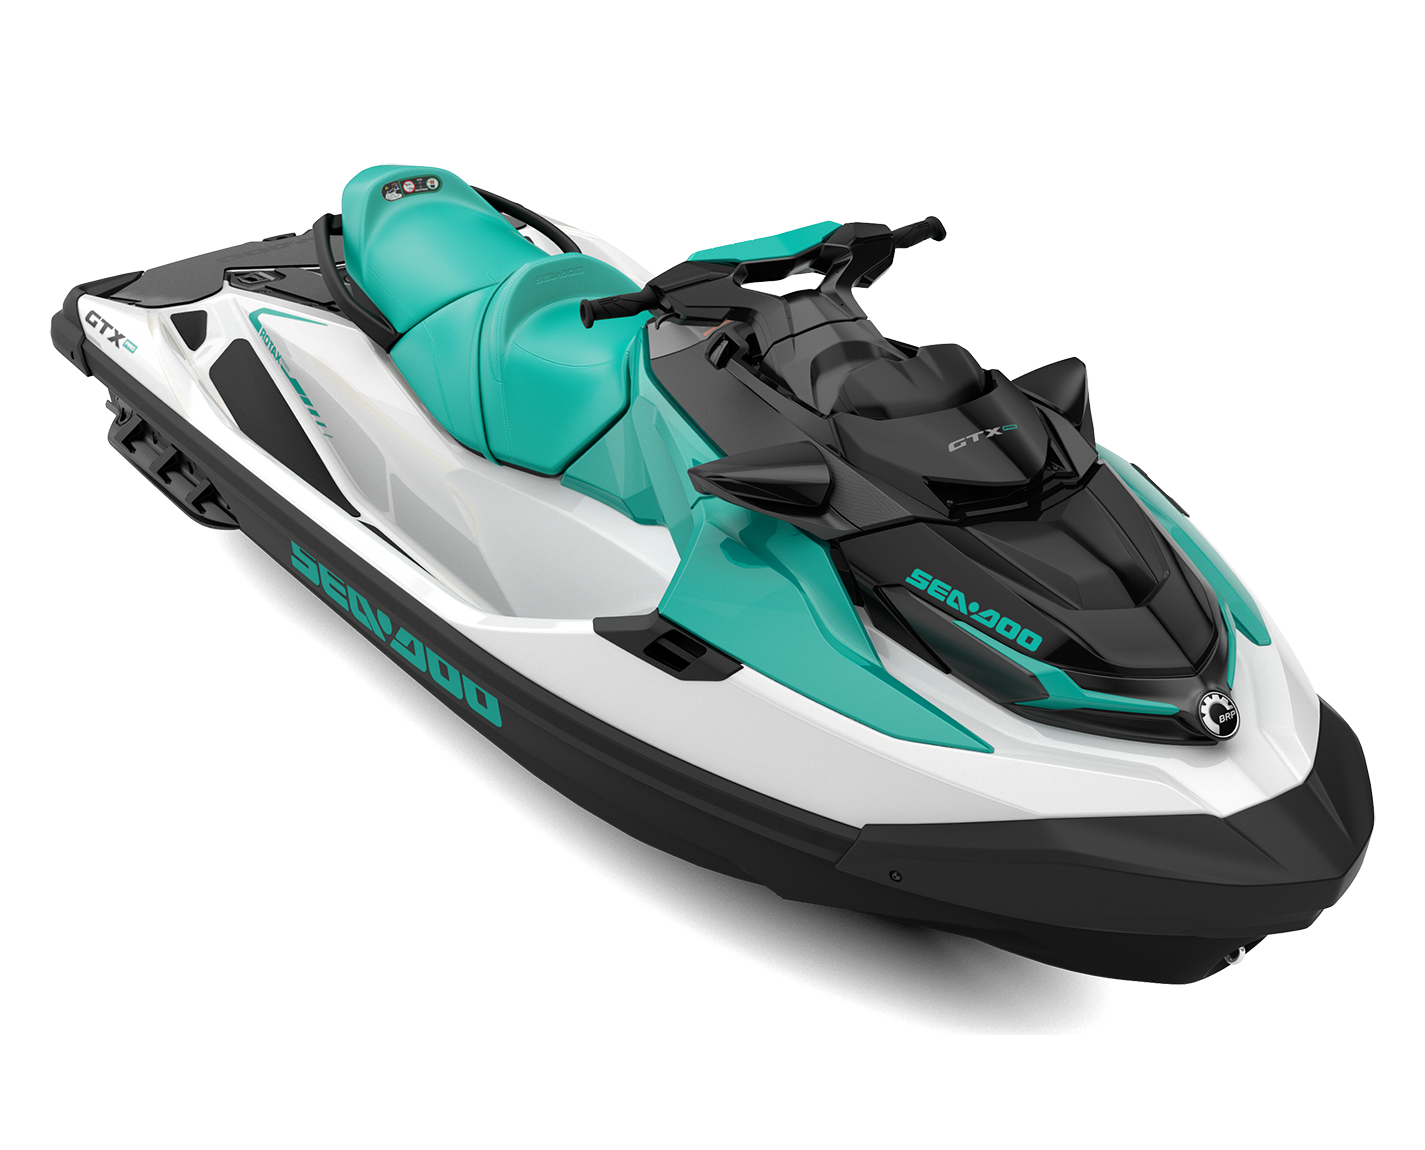 Sea-Doo GTX PRO 130 Model